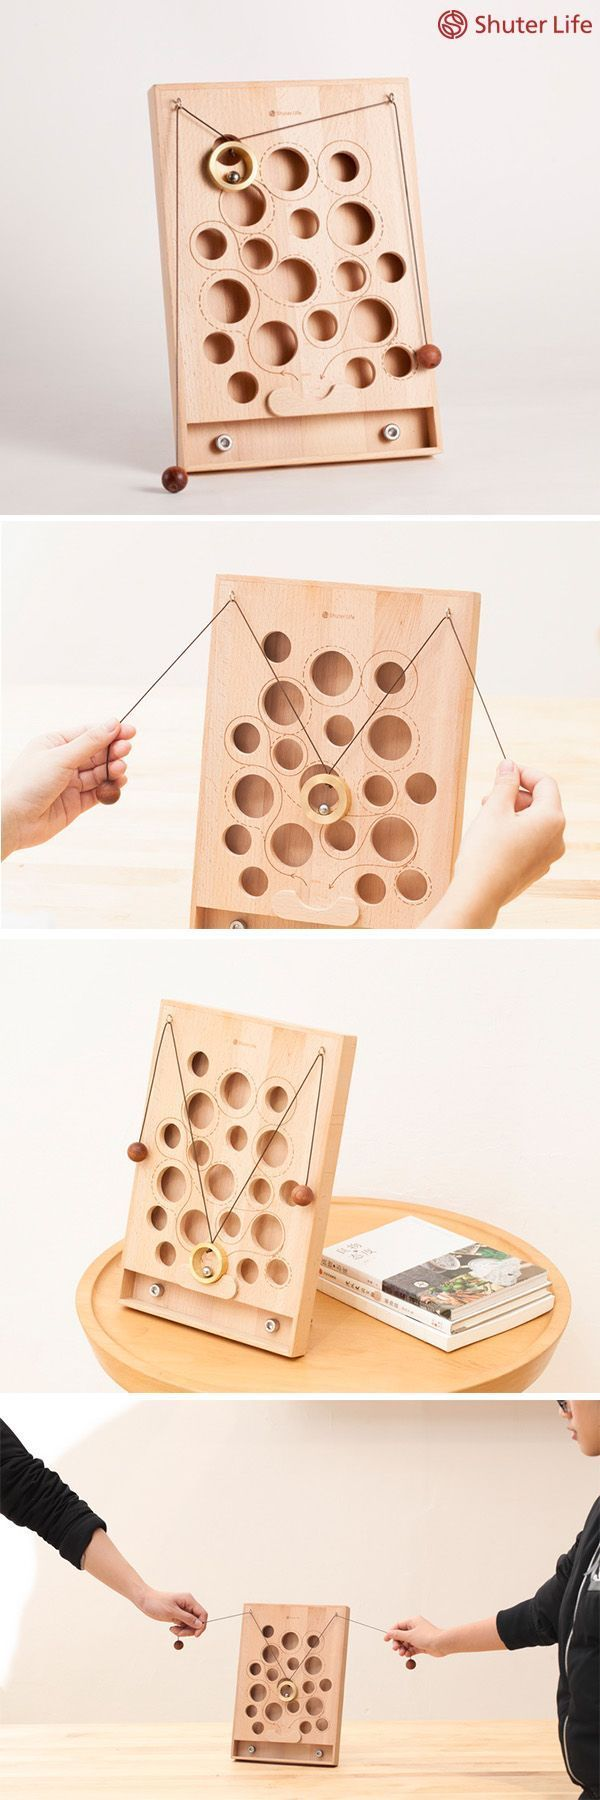 25 +> 6 Amazing Useful Ideas: Woodworking Decor How to Build …